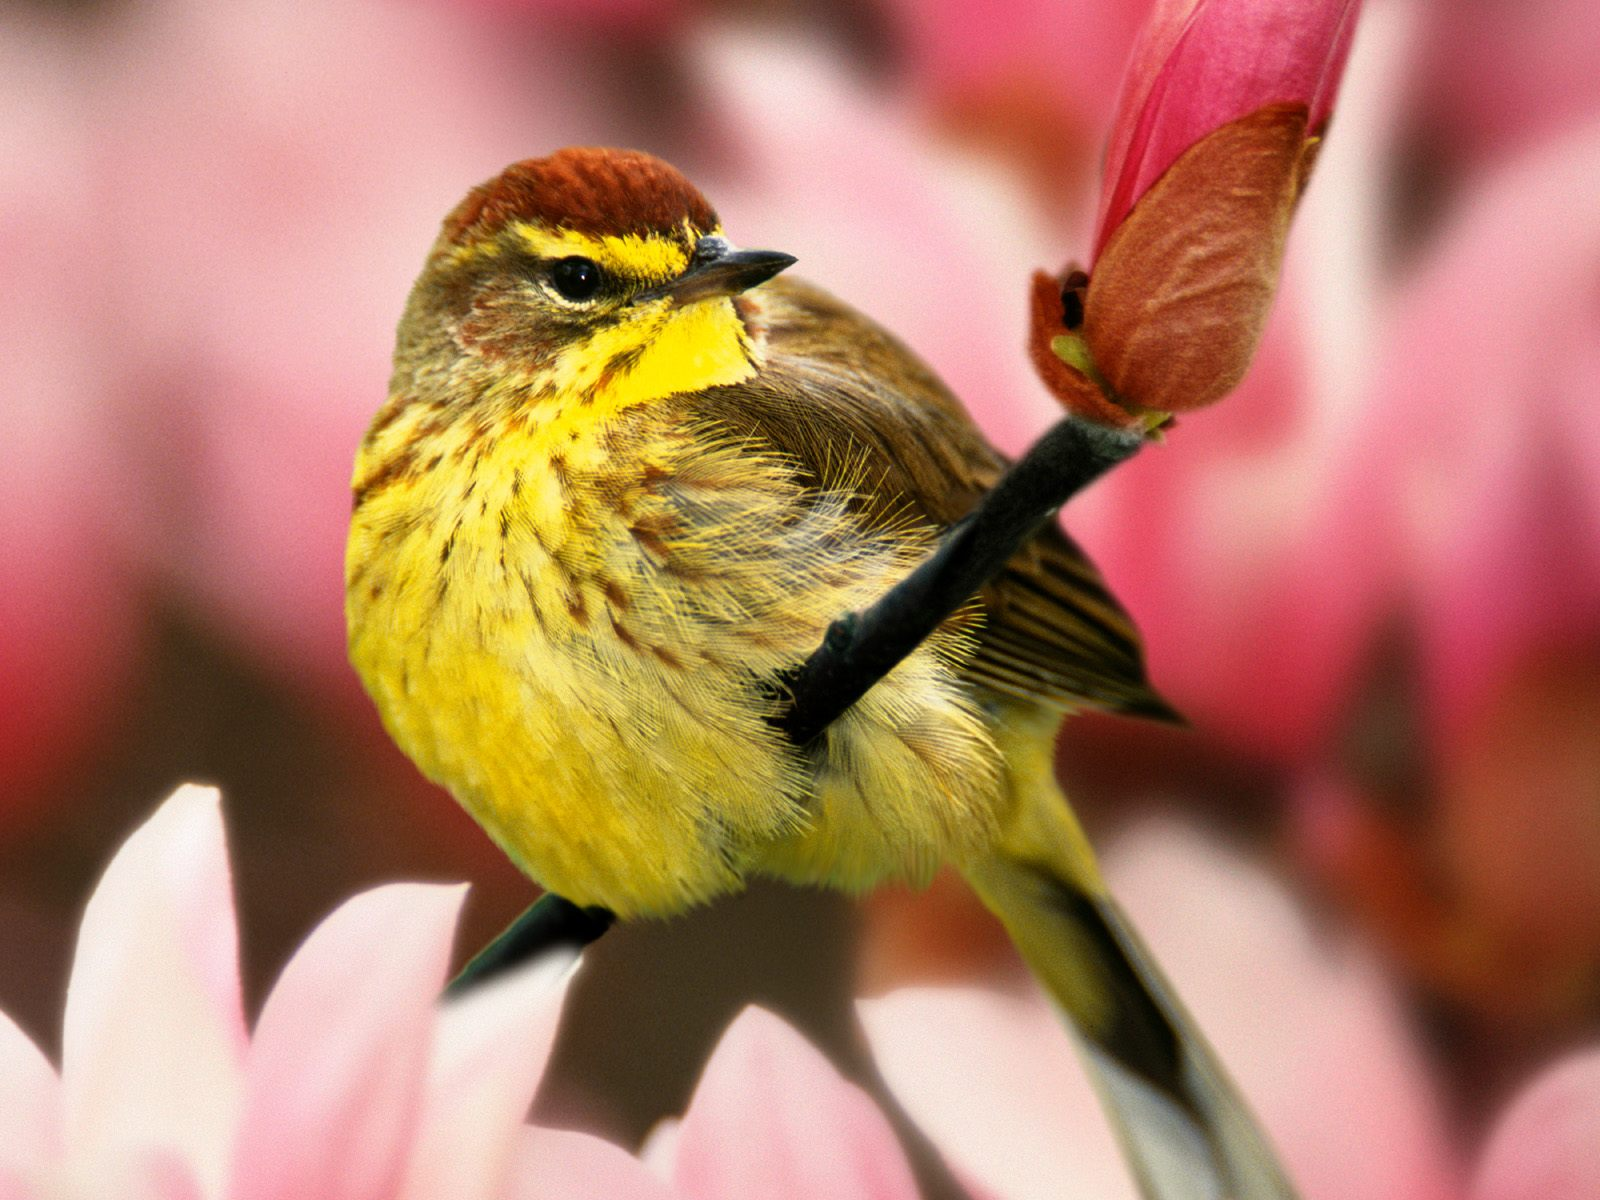 High-resolution pictures of birds 689